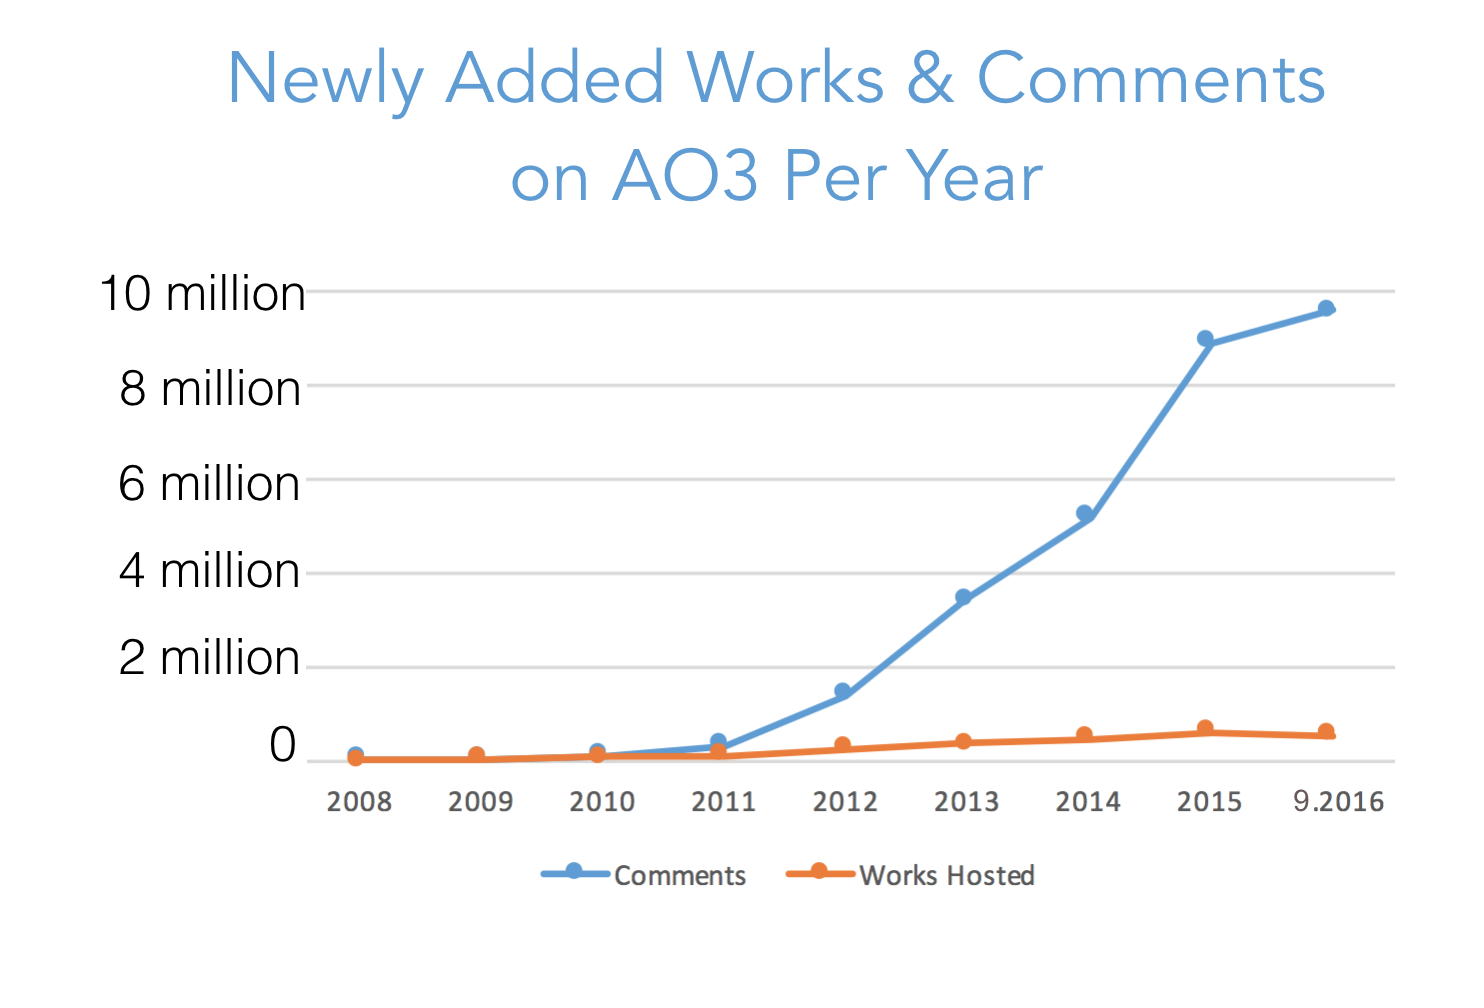 Growth graph for works and comments created each year on AO3, starting from zero in 2008 to over 500,000 works and 9.5 million comments this year alone.